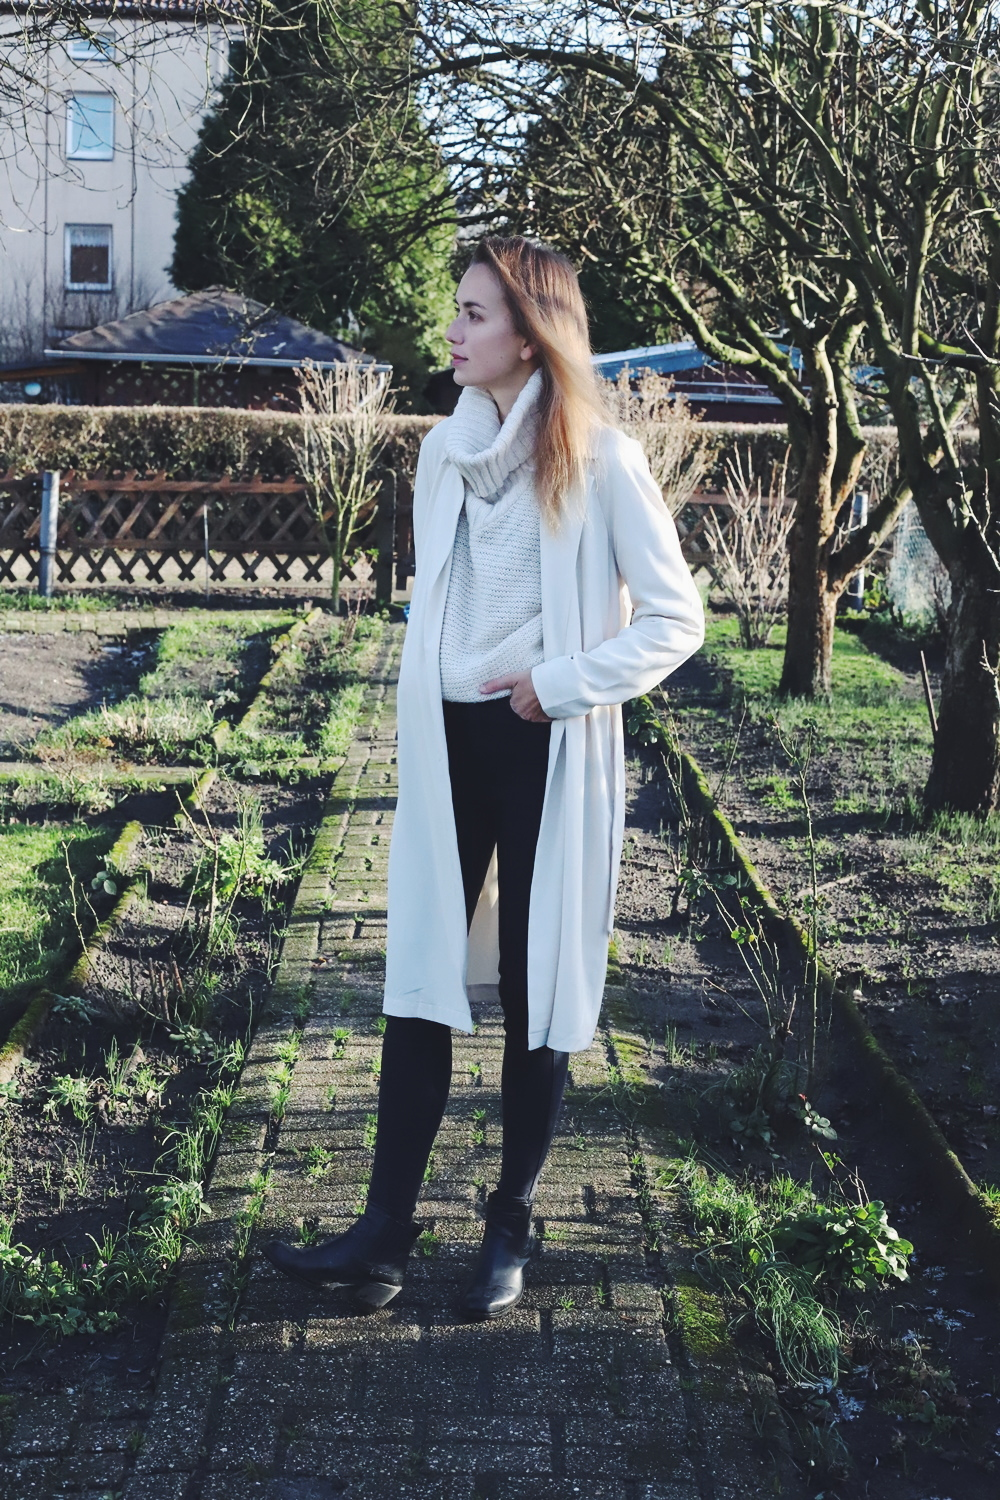 How to Style – Rollkragenpullover im Winter kombinieren